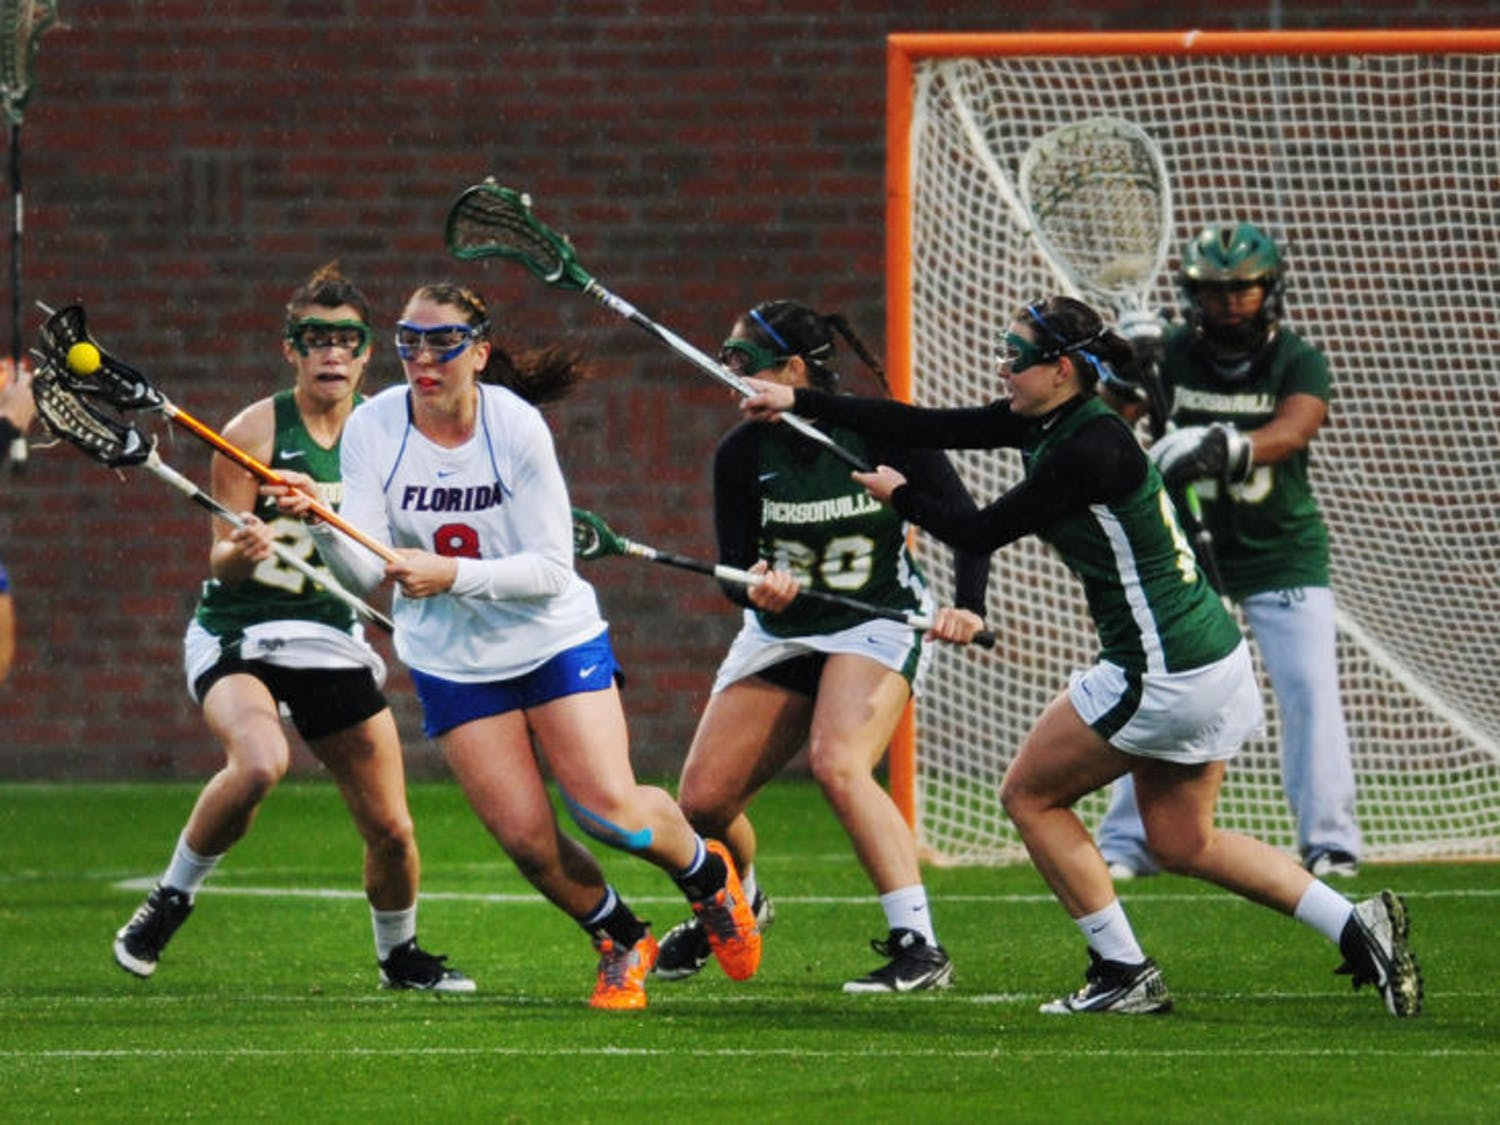 Shannon Gilroy breaks away from a group of defenders during Florida's 21-5 win against Jacksonville on Feb. 12 at Donald R. Dizney Stadium.